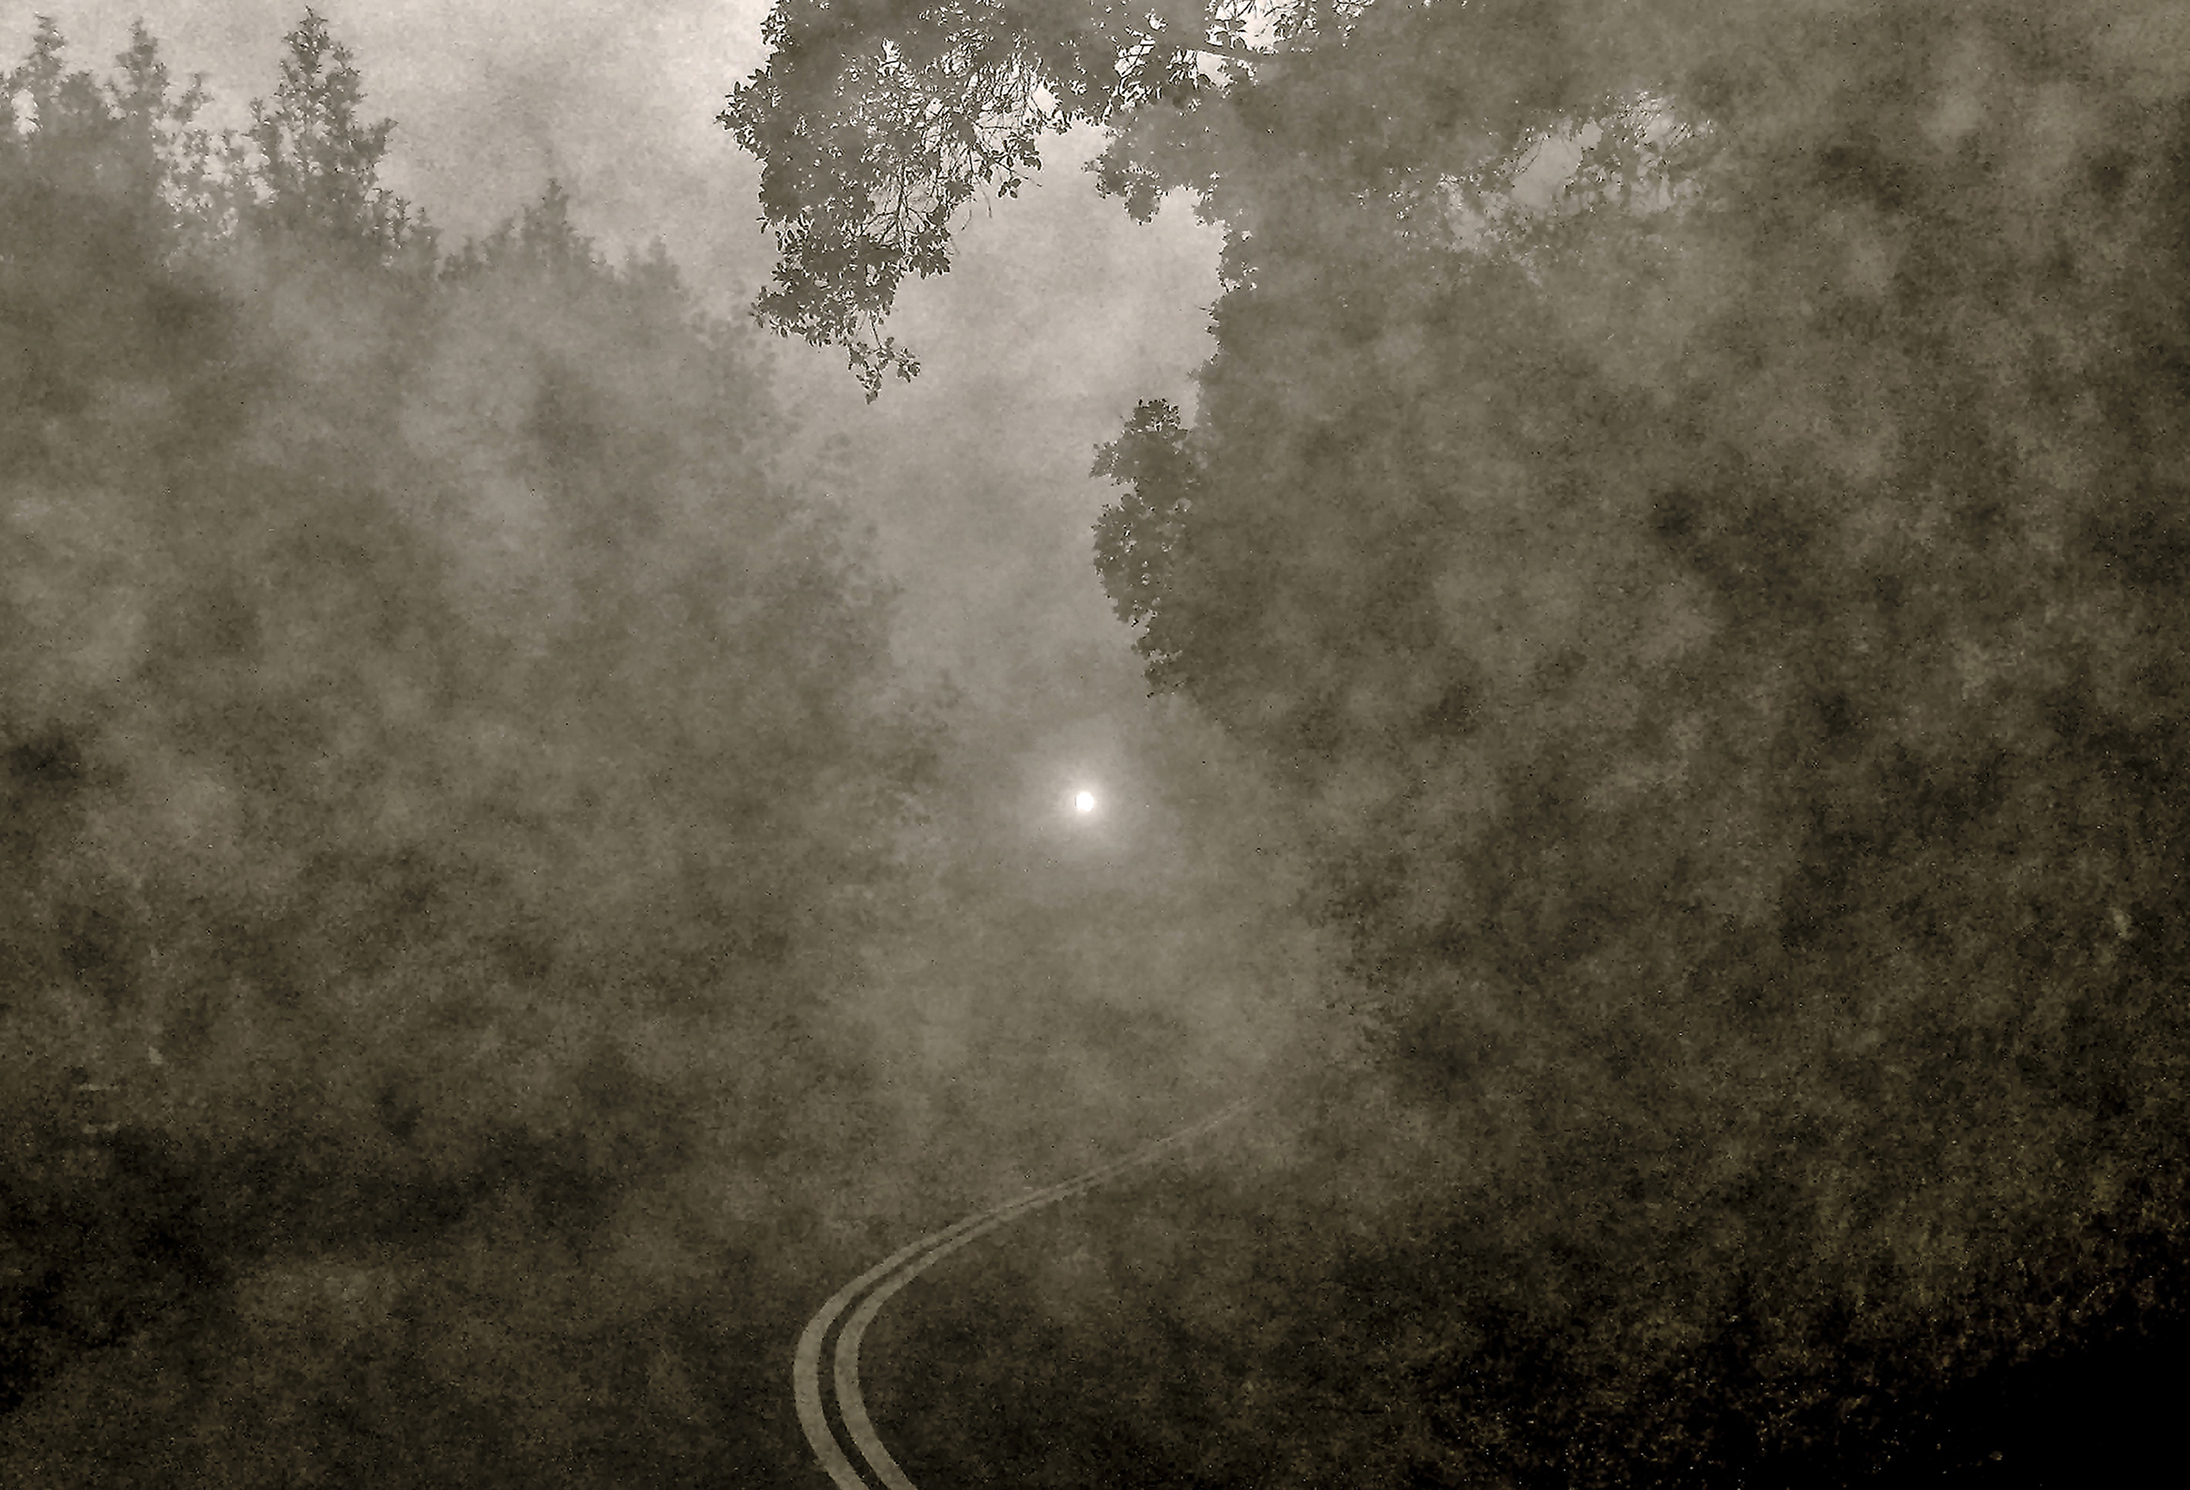 Fog and Light . Digital Photograph. A Leder.